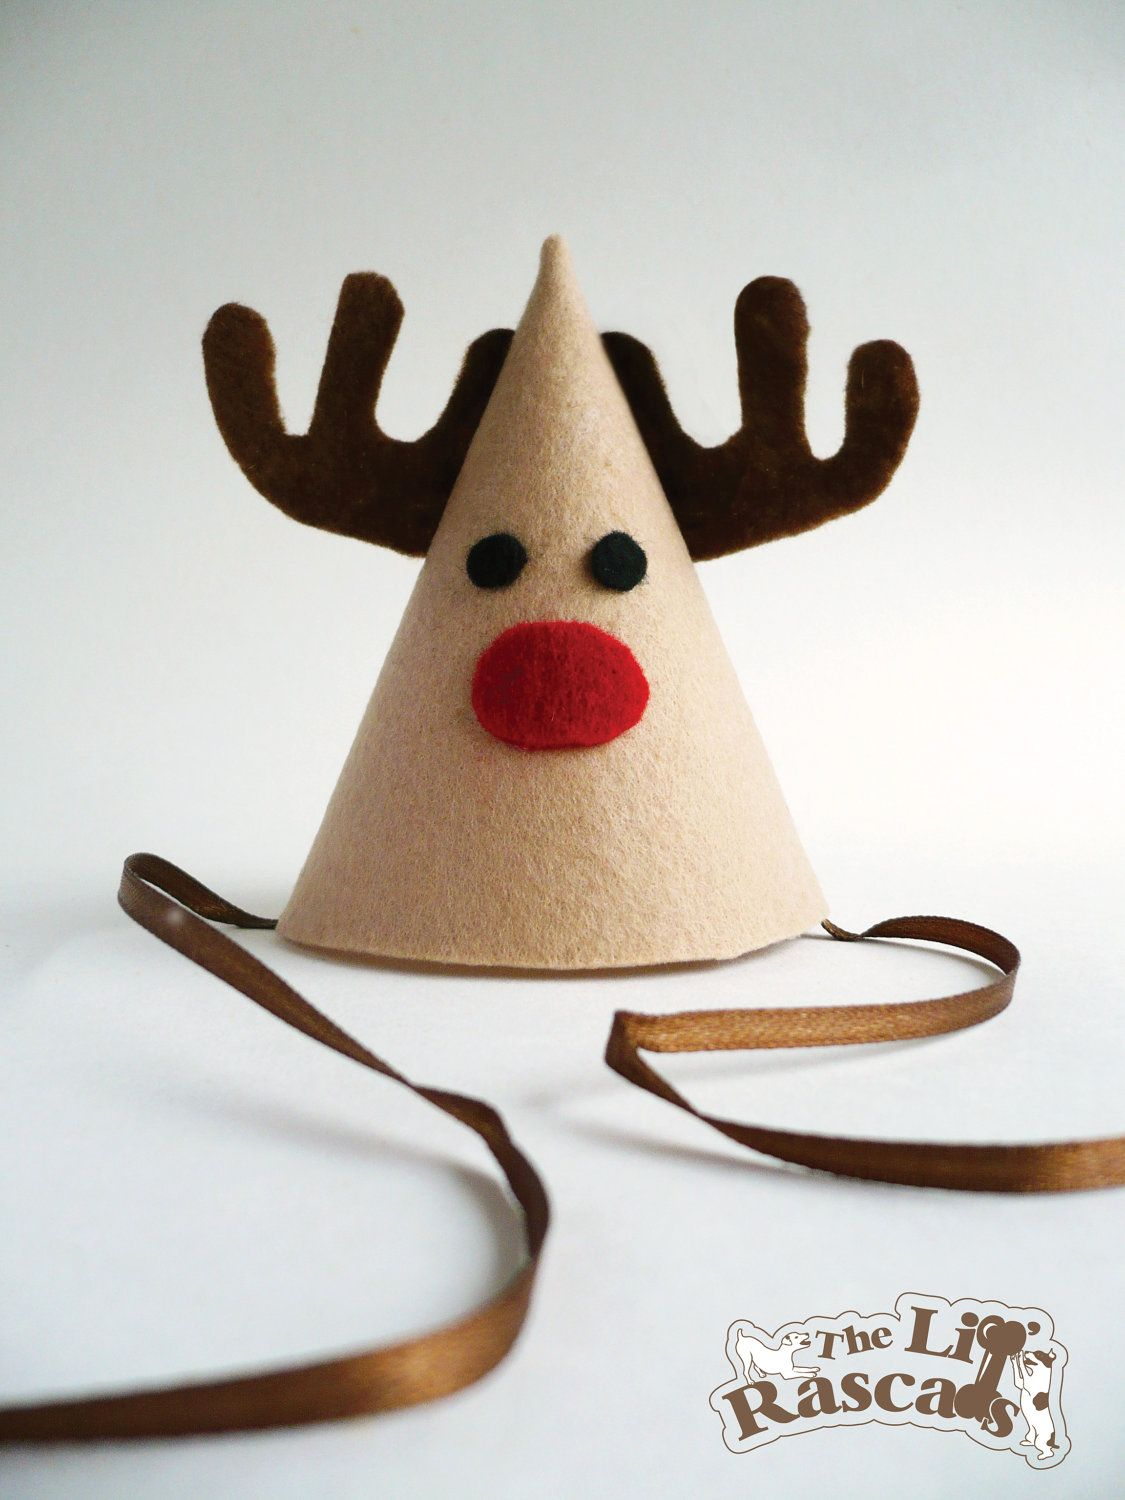 Delightful Christmas Party Hat Ideas Part - 3: Christmas Rudolph The Red Nose Reindeer Party Hat Costume For Dogs. $8.50,  Via Etsy